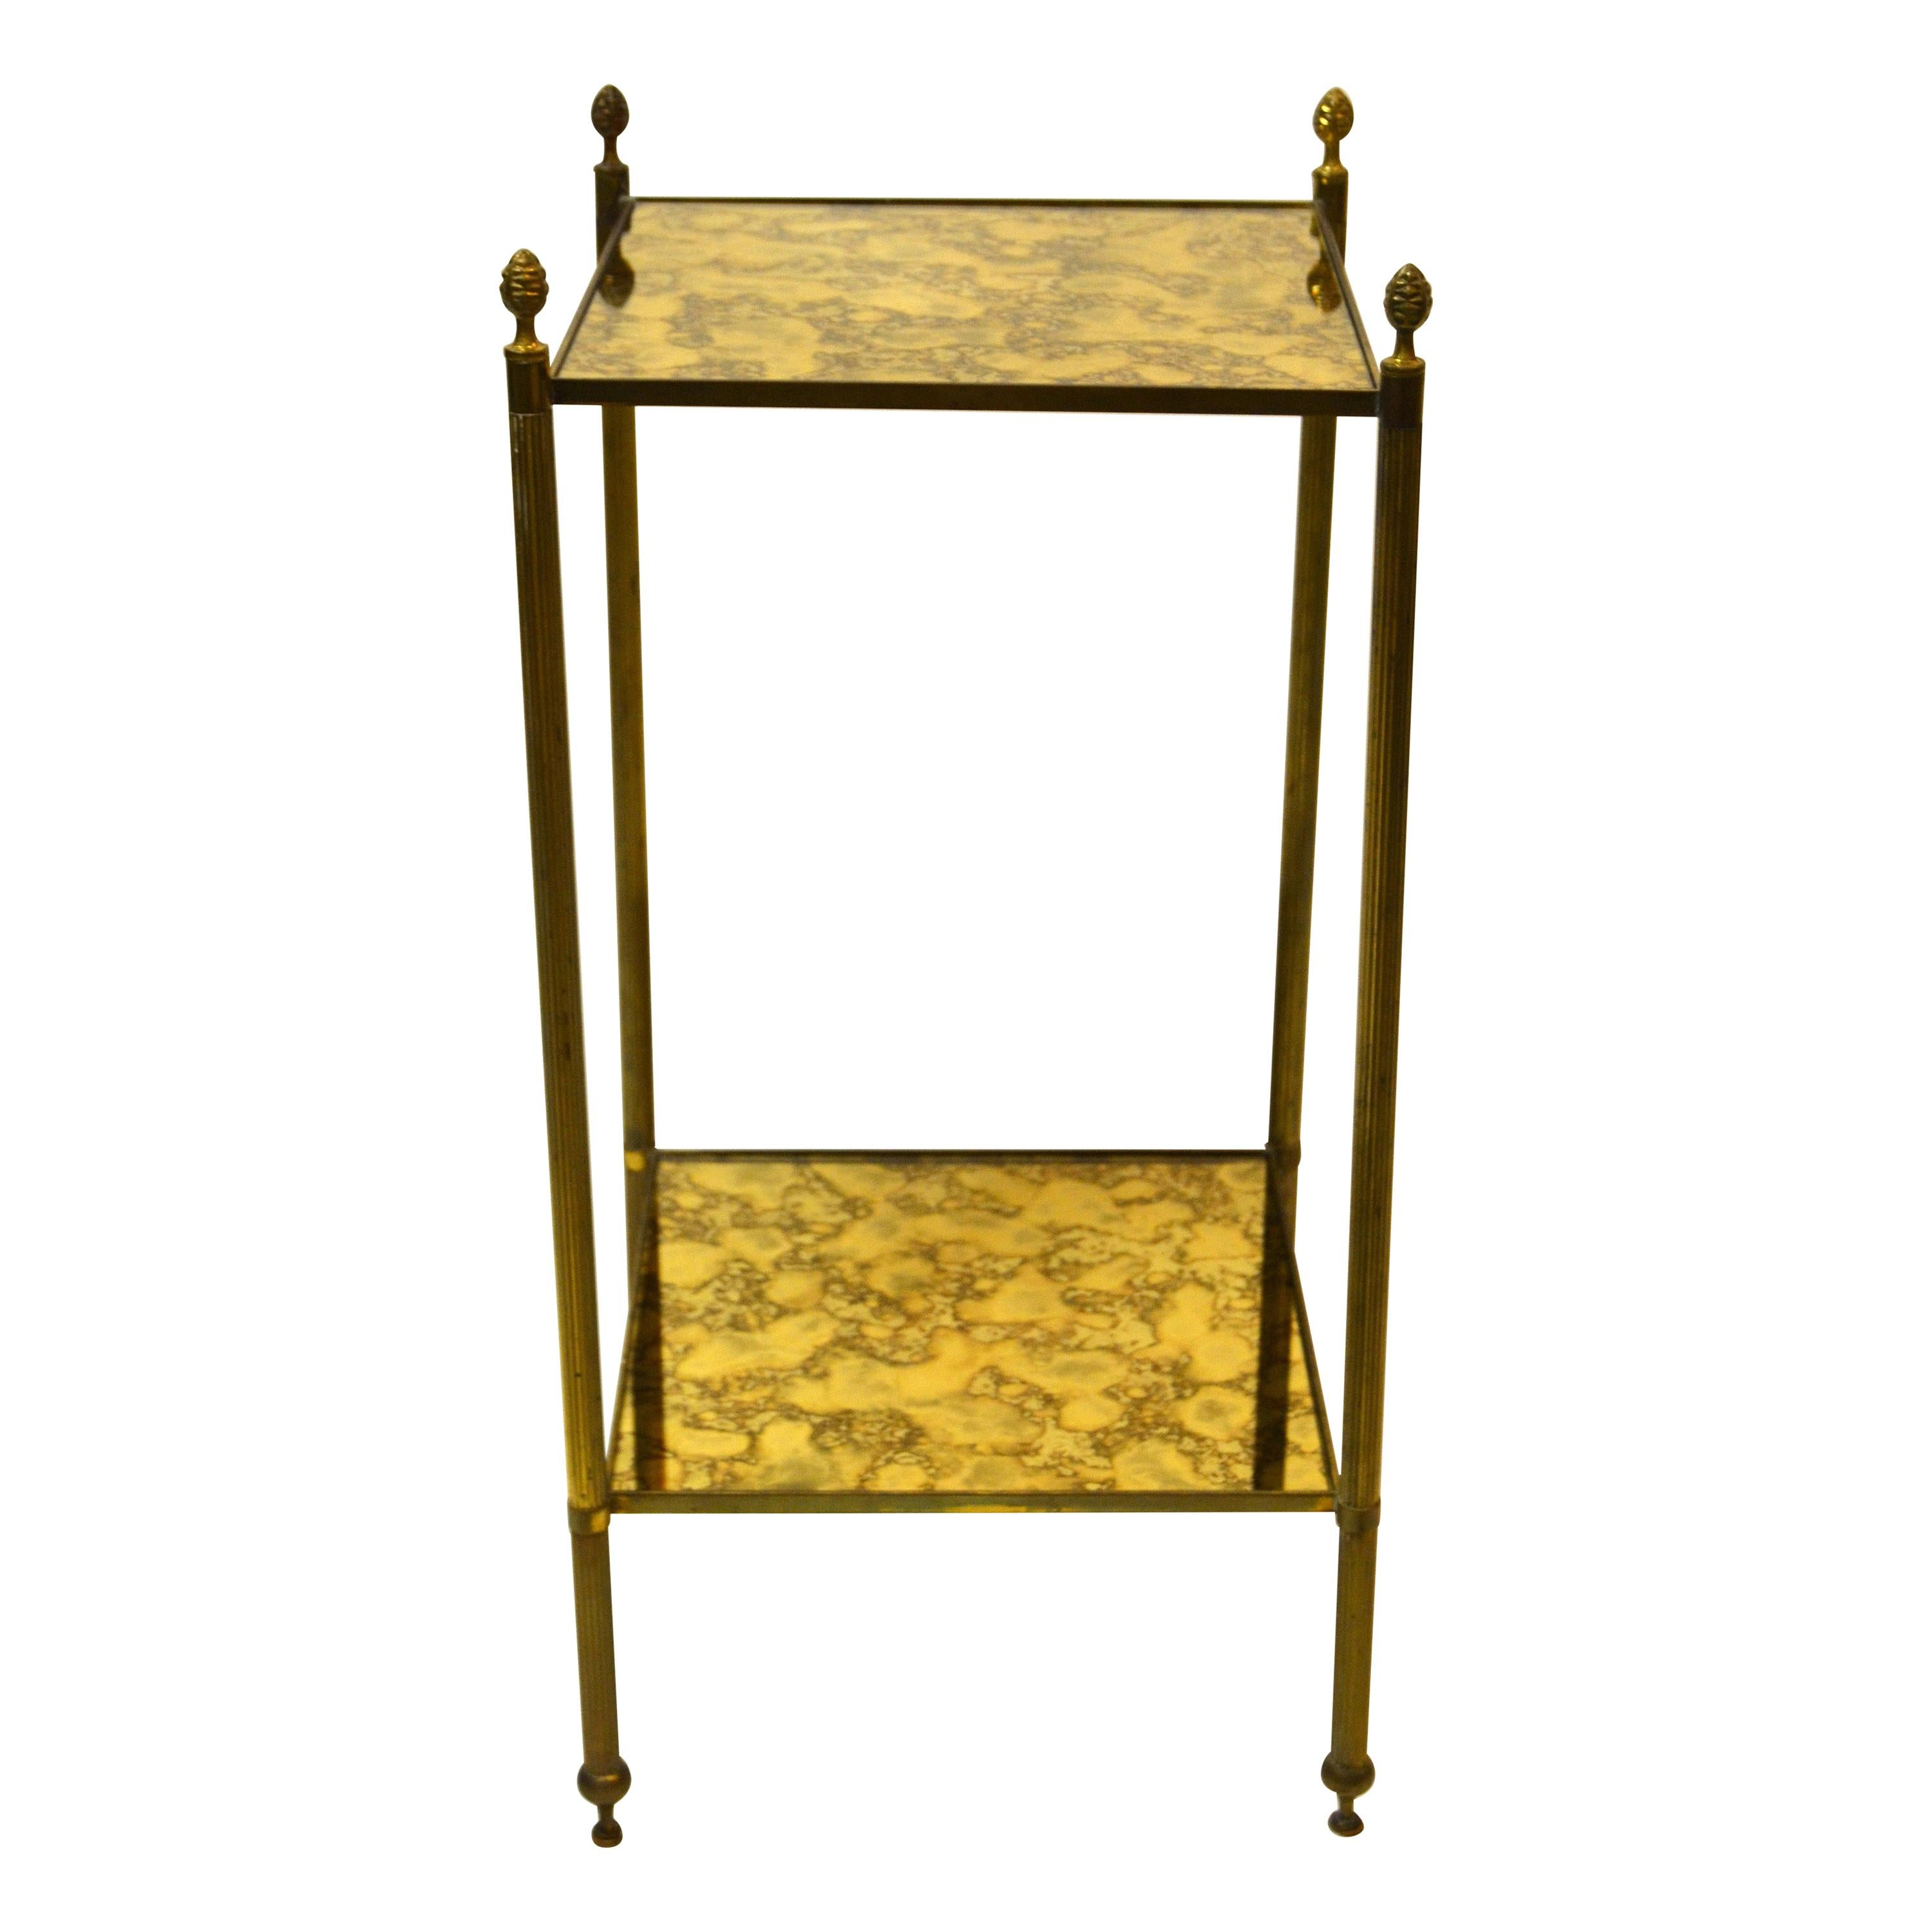 Pair Of French Bronze and Brass Maison Baguès Square Two-Tier Side Table